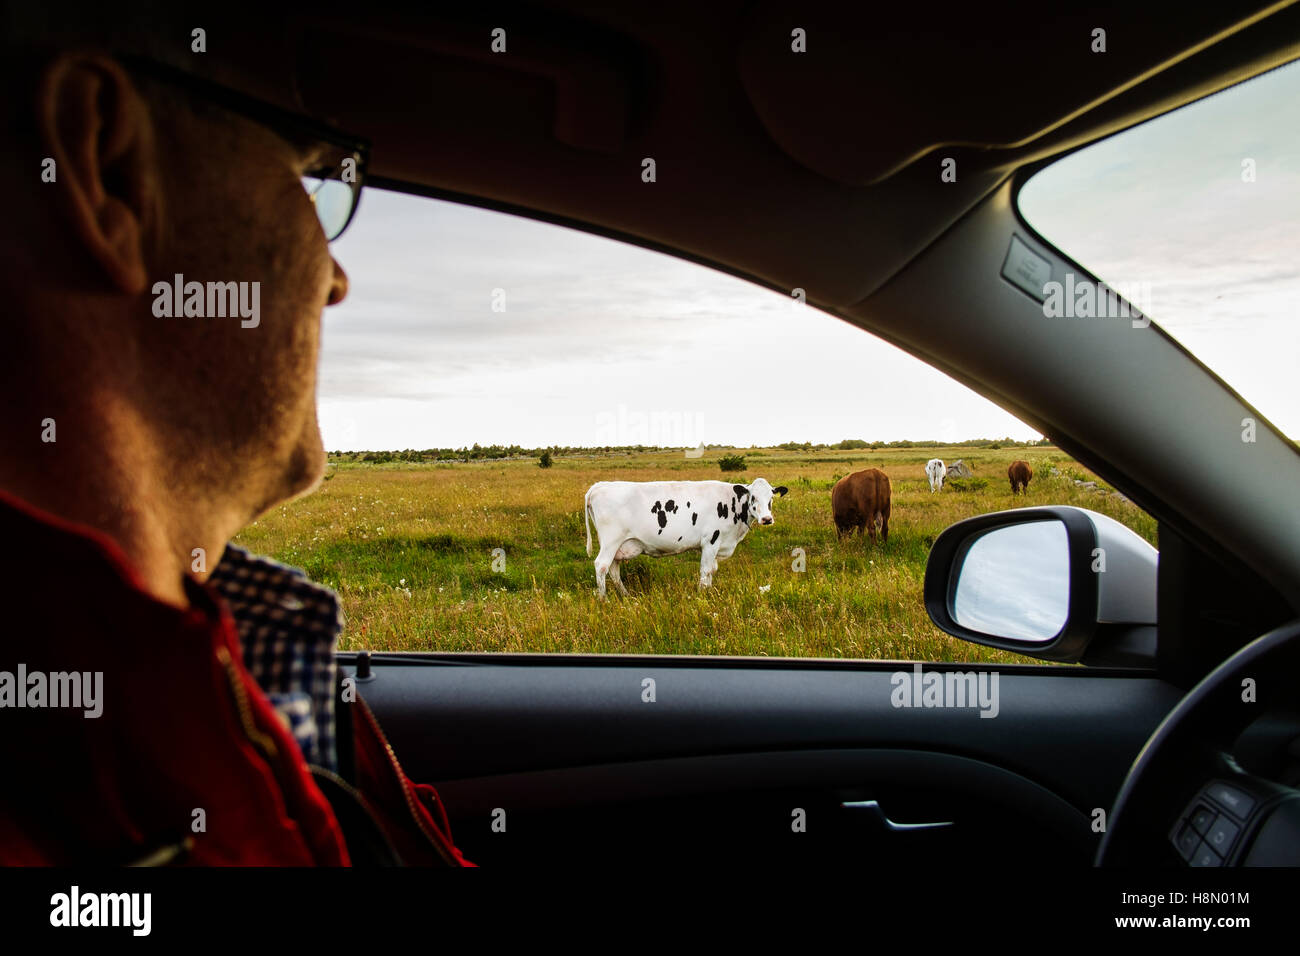 Mature man in car observing cows grazing in field - Stock Image